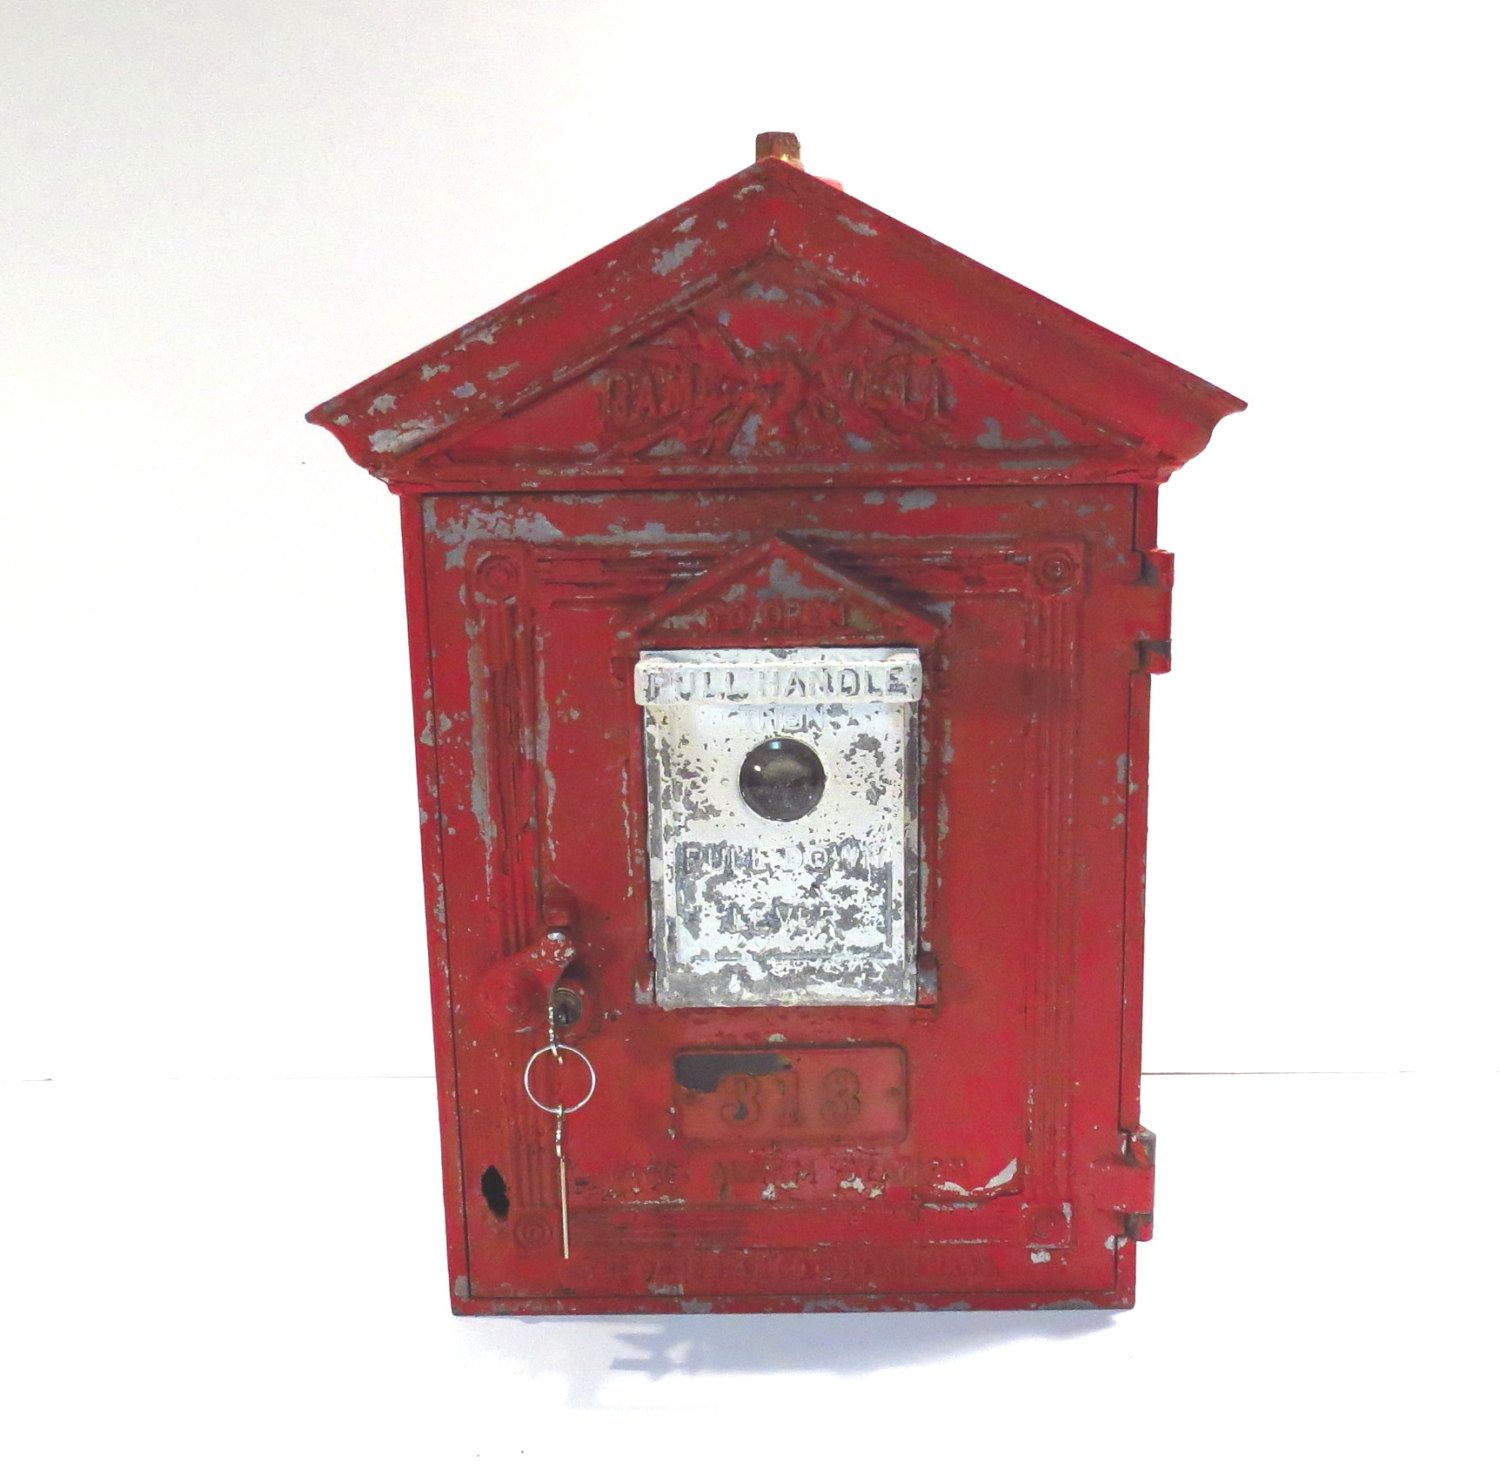 Gamewell Fire Alarm Box Vintage Early 1900s Fire Call Box